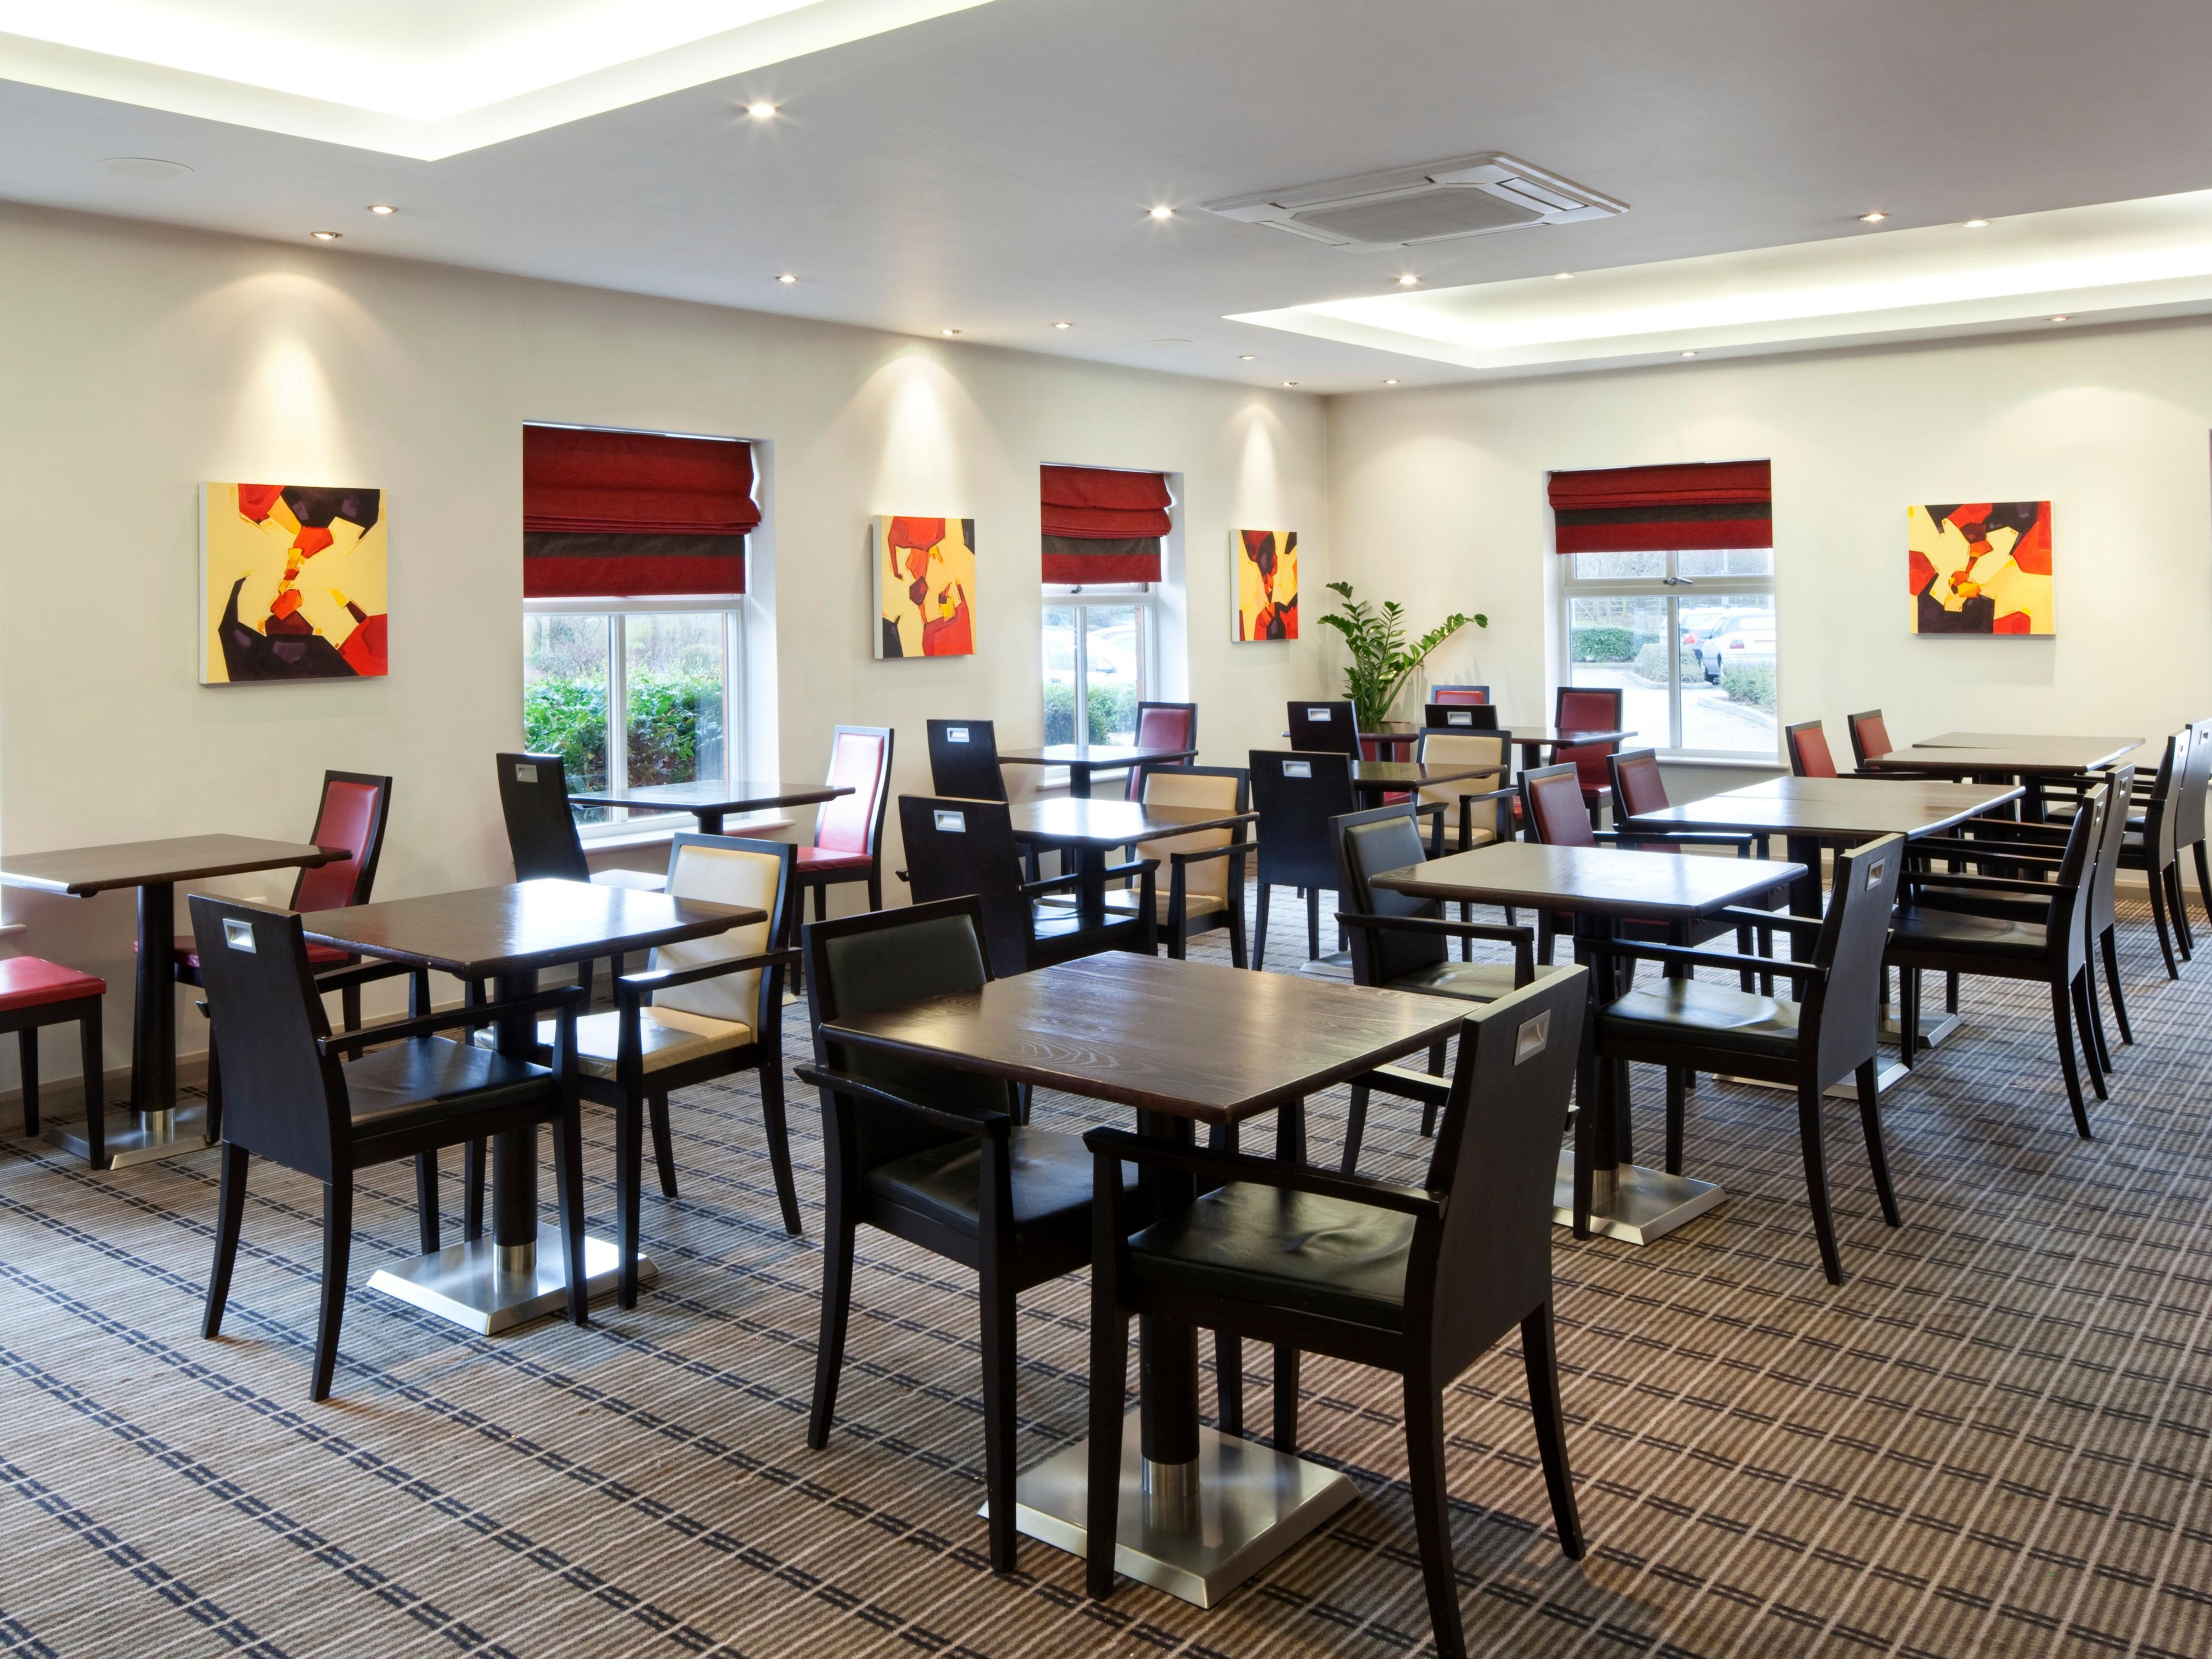 Relax in our lounge with simple evening meals served daily